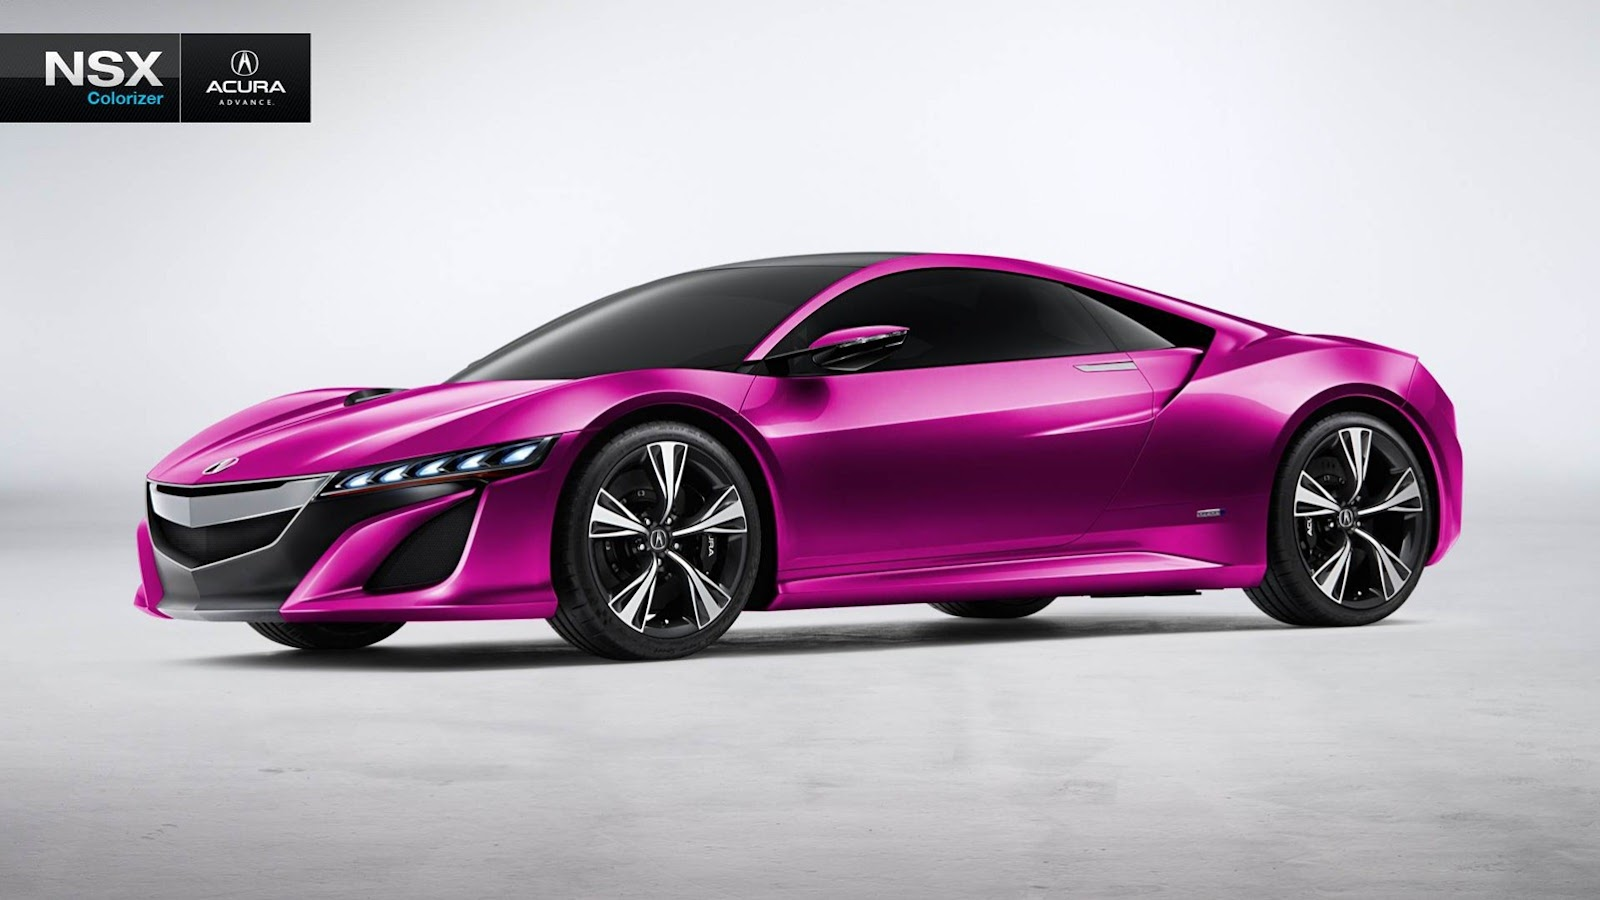 Yes we re talking about the acura nsx pre production concept and if you haven t figured it out already we re going to be seeing a lot more of the